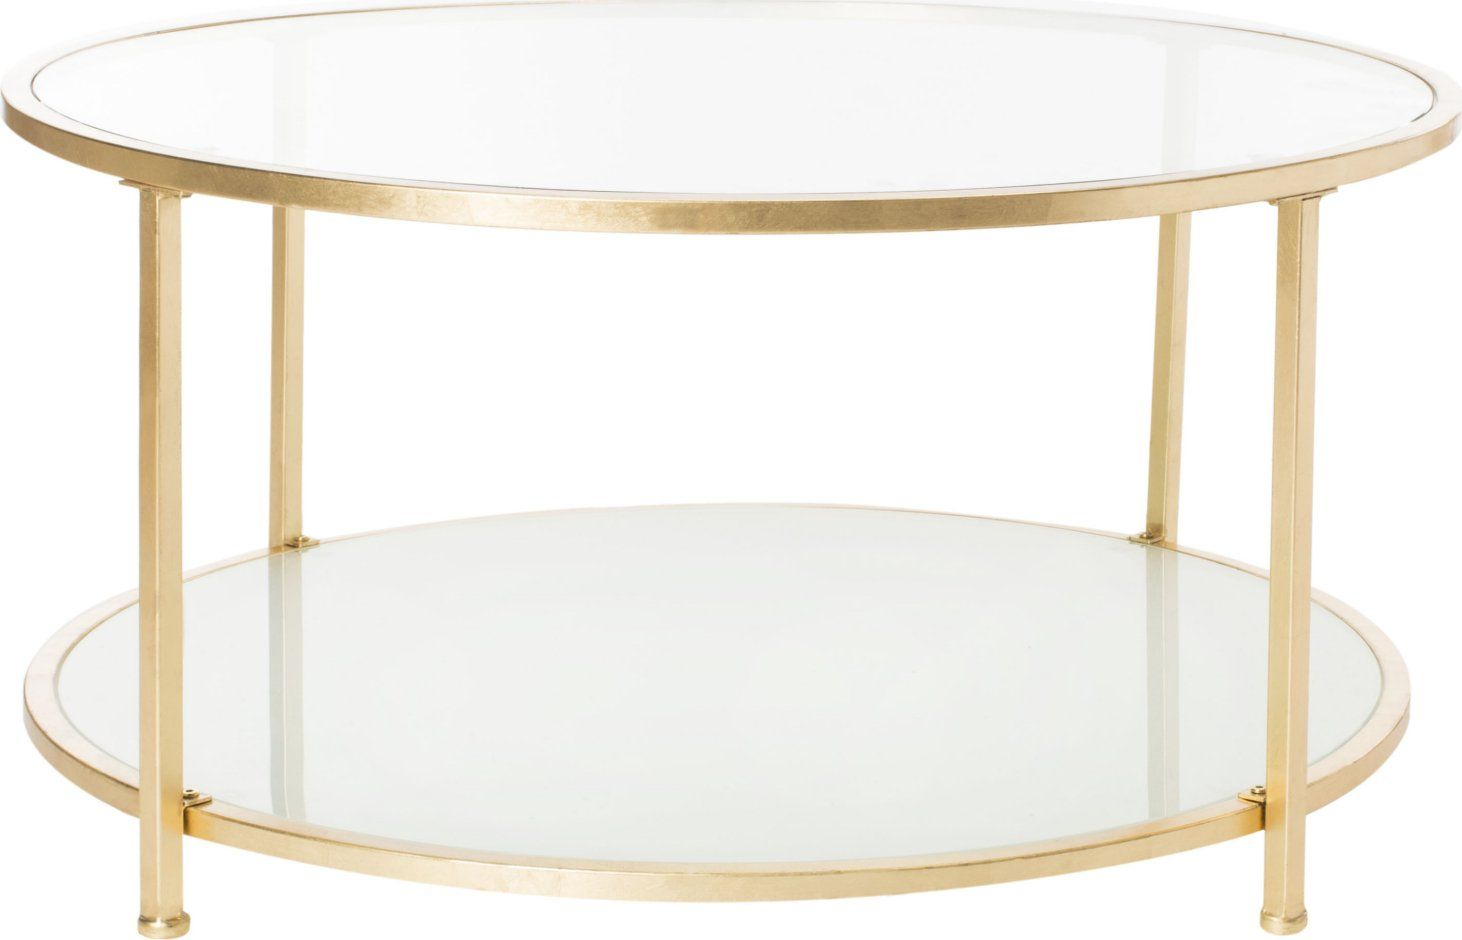 Safavieh Ivy 2 Tier Round Coffee Table Gold In 2021 Coffee Table Sleek Coffee Table Gold Coffee Table [ jpg ]